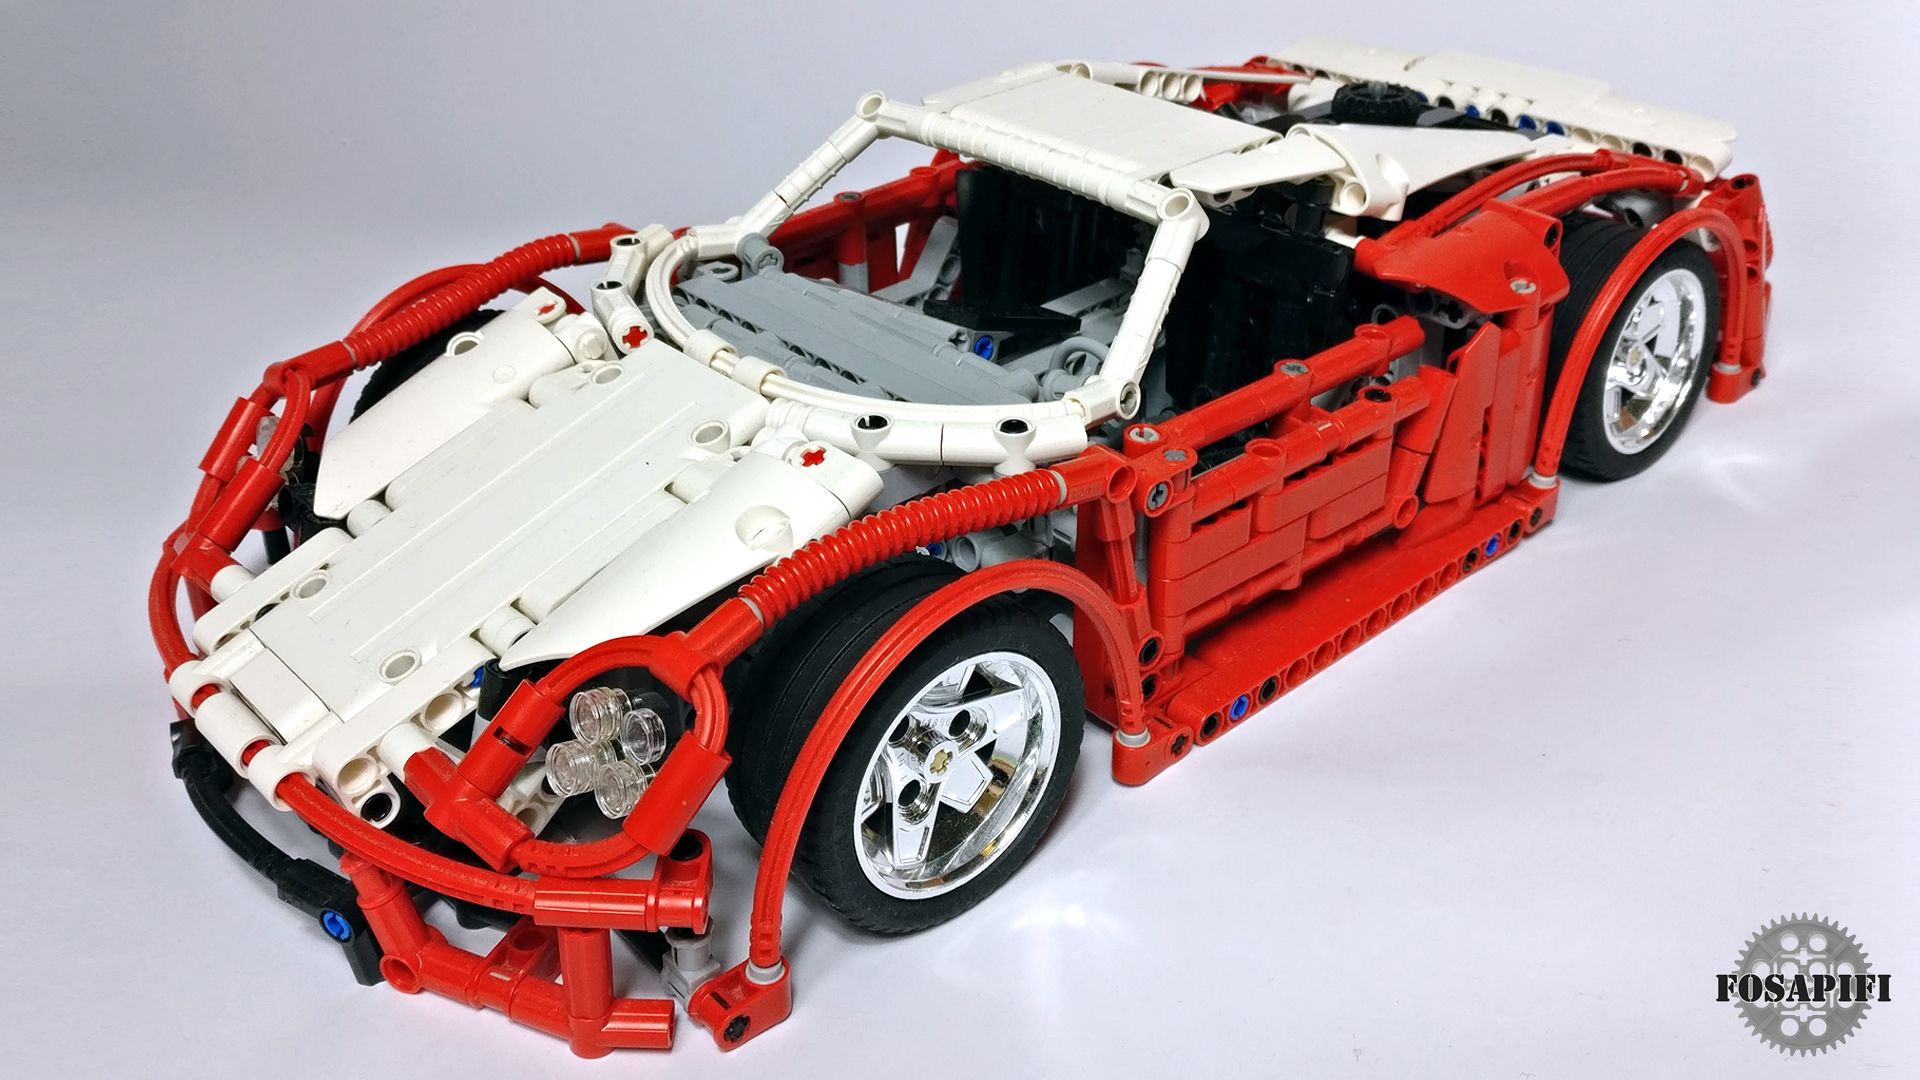 lego technic creations by fosapifi porsche 918 spyder moc. Black Bedroom Furniture Sets. Home Design Ideas